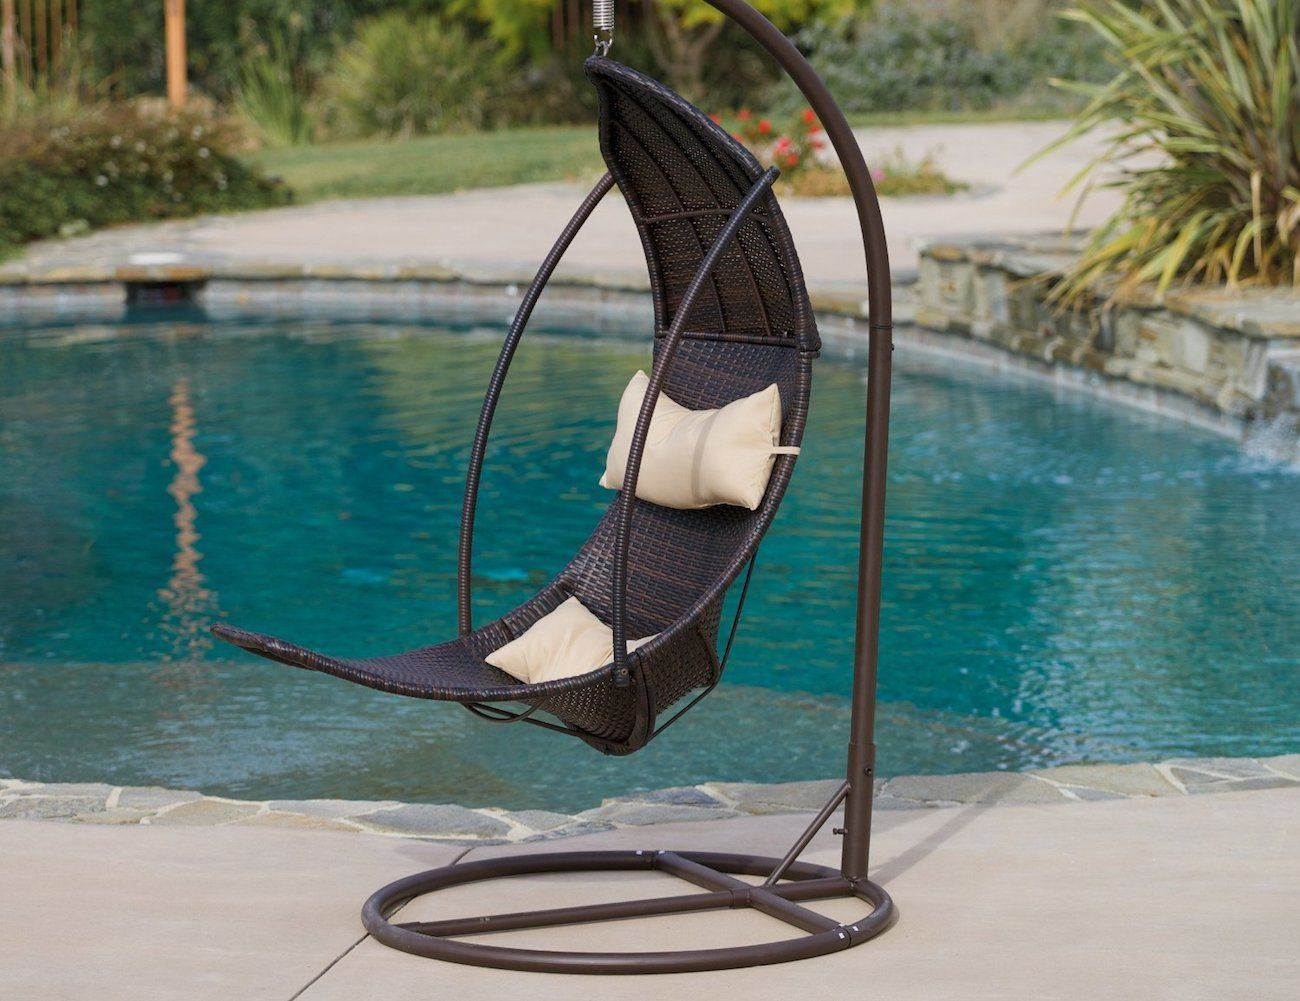 Brown Wicker Hanging Swing Chair